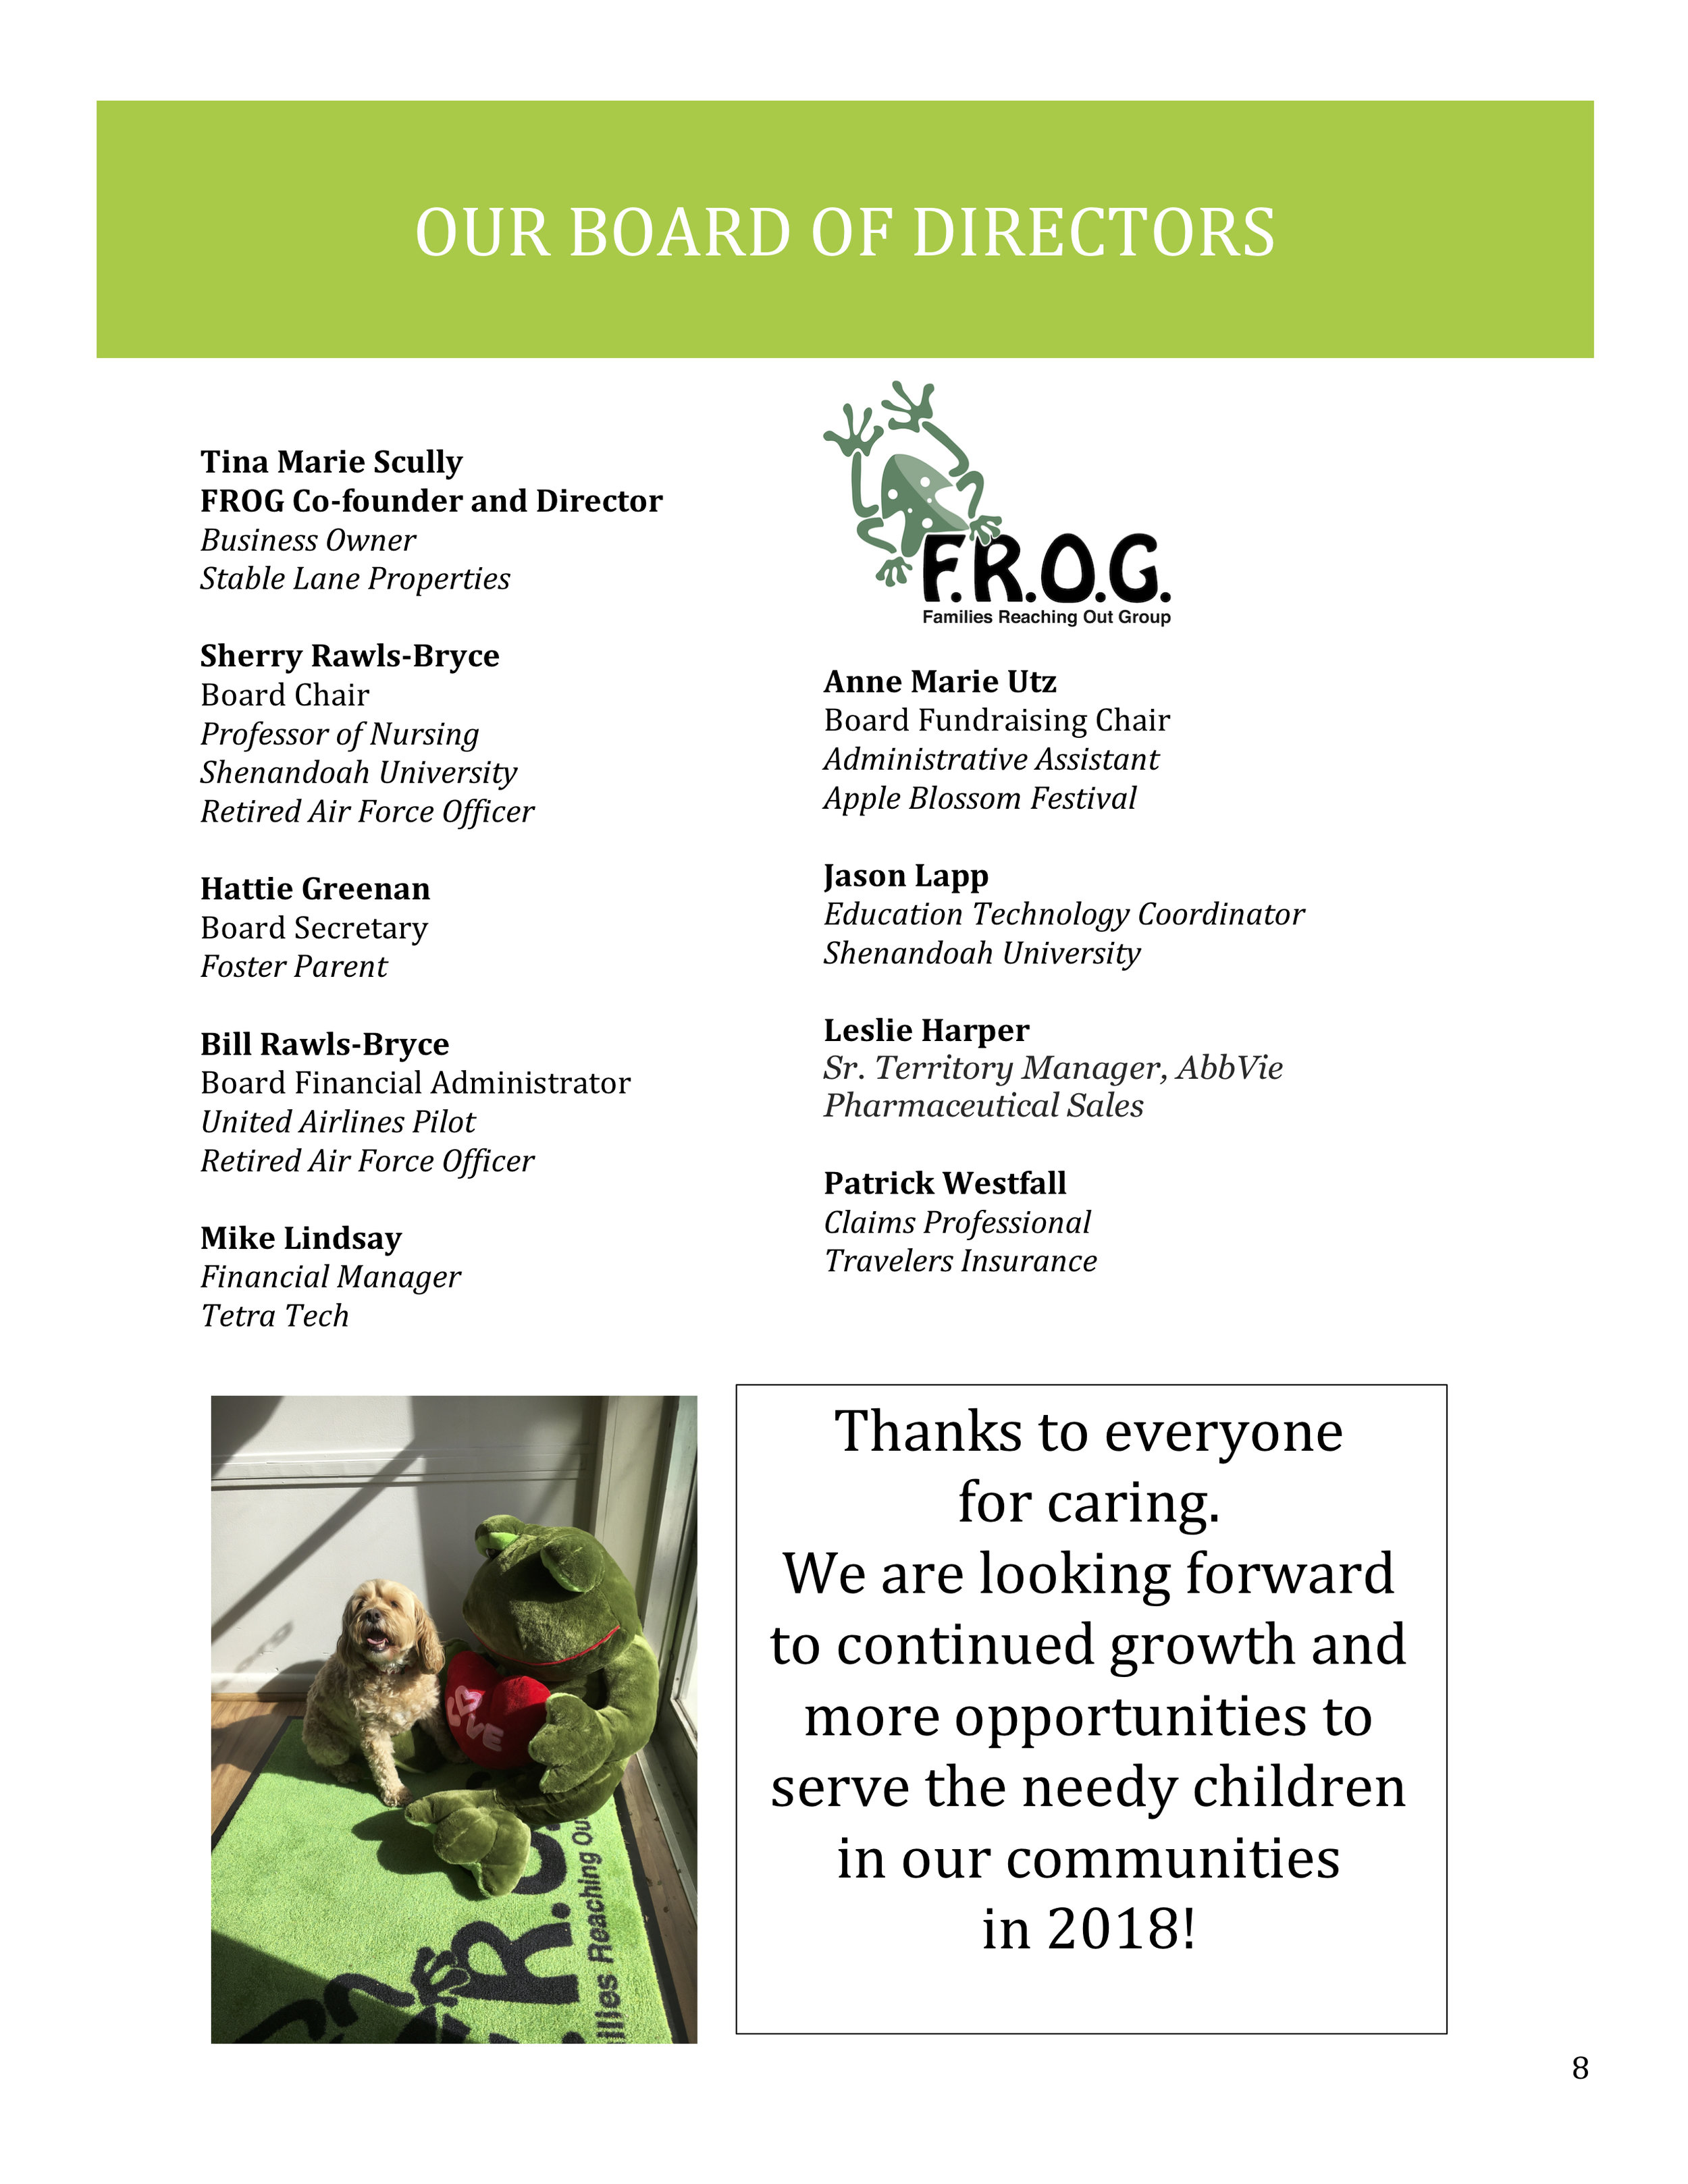 FROG-Our Year in Review-2017 Page 8.jpg